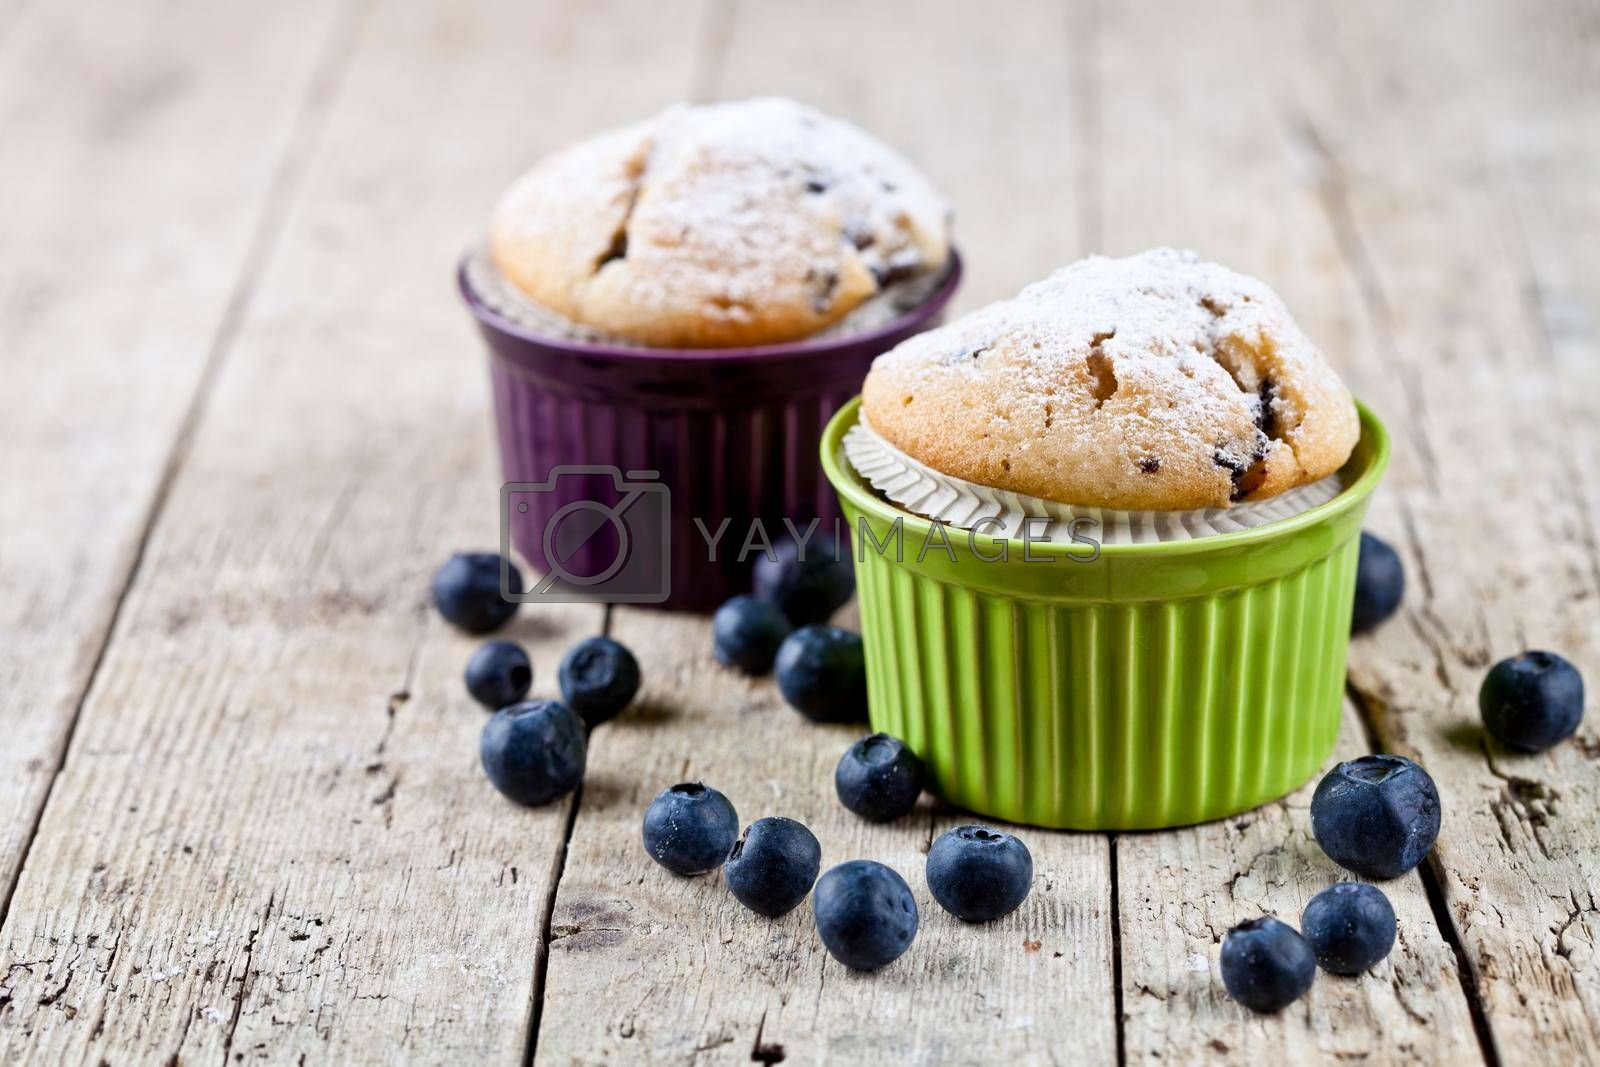 Two homemade fresh muffins on ceramic green and purple bowls with blueberries on rustic wooden table background. With copy space.